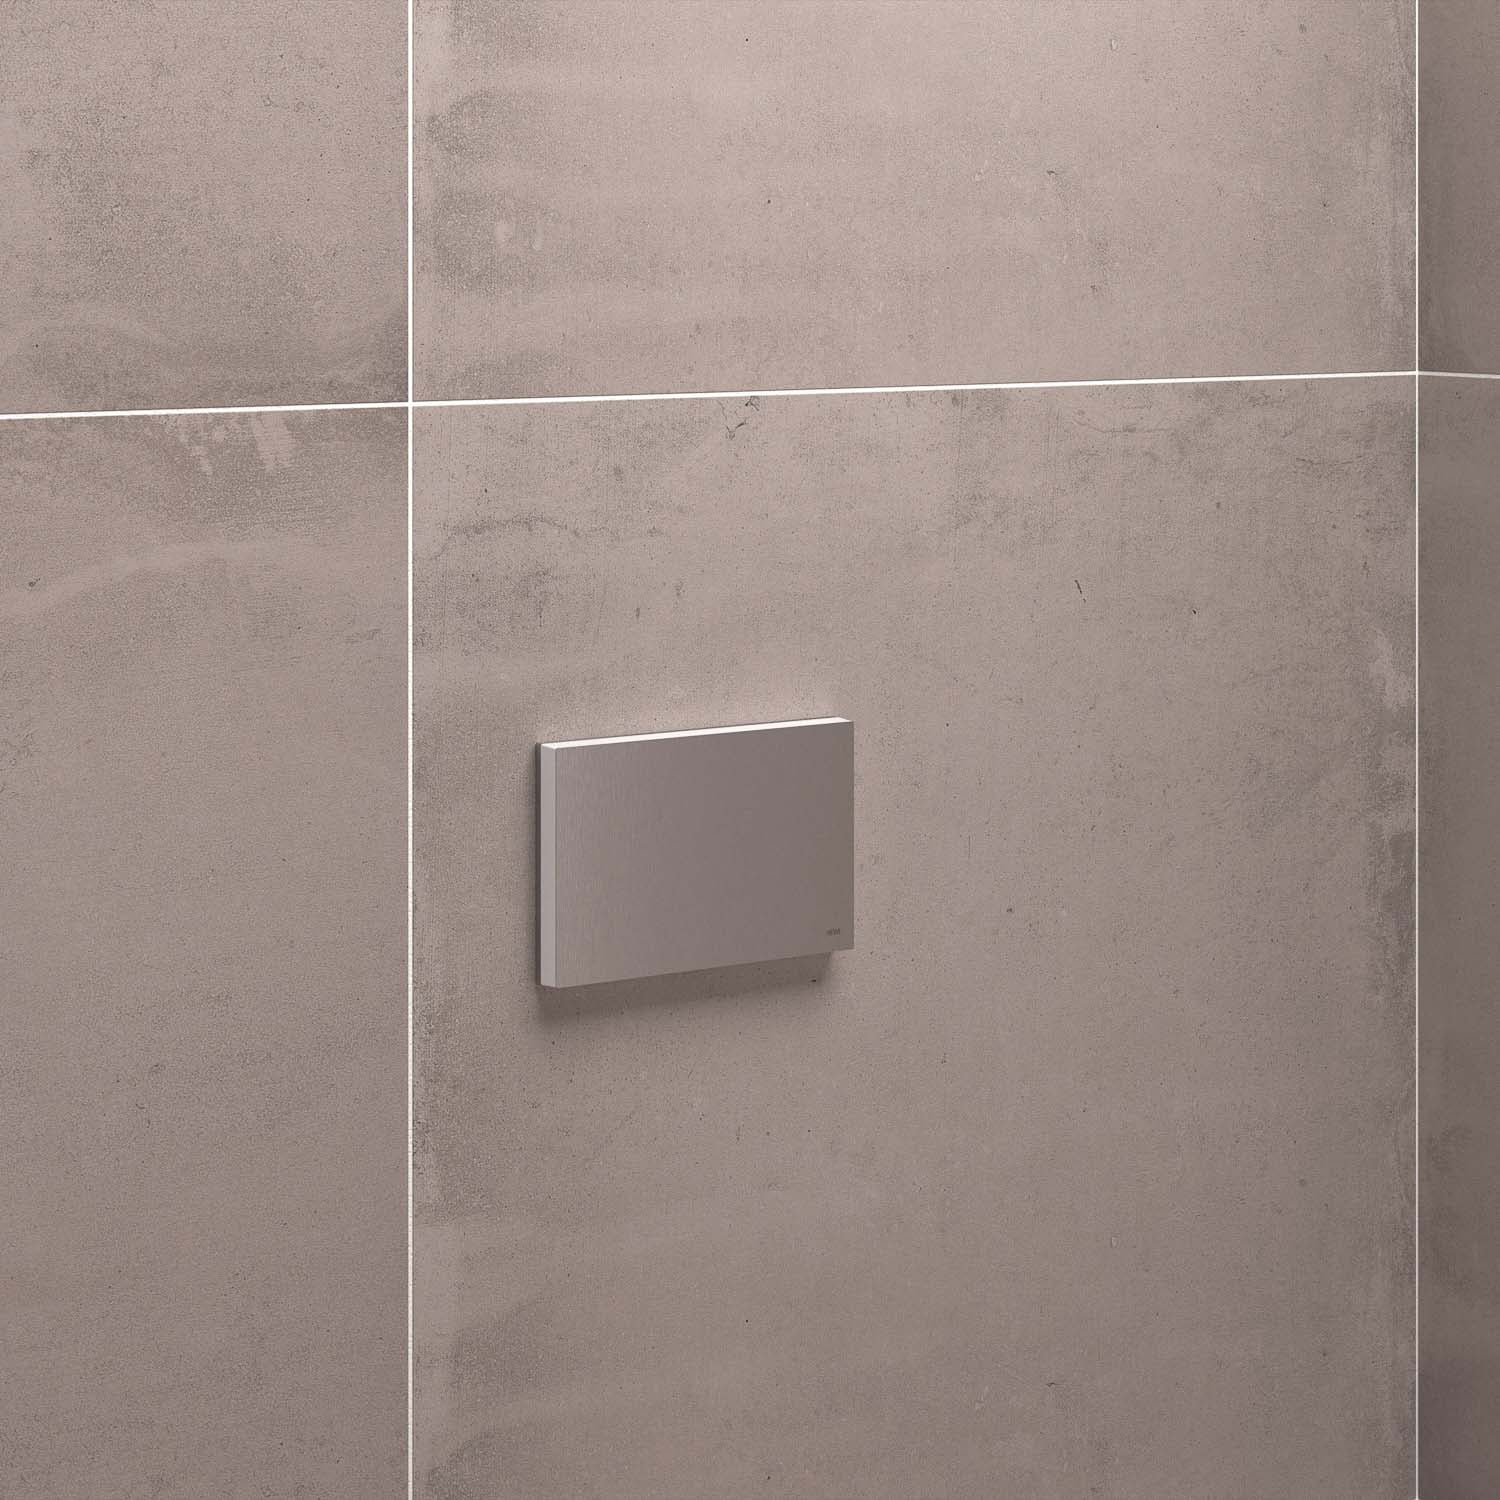 Freestyle Removable Shower Seat Mounting Plate and Cover with a satin steel finish lifestyle image